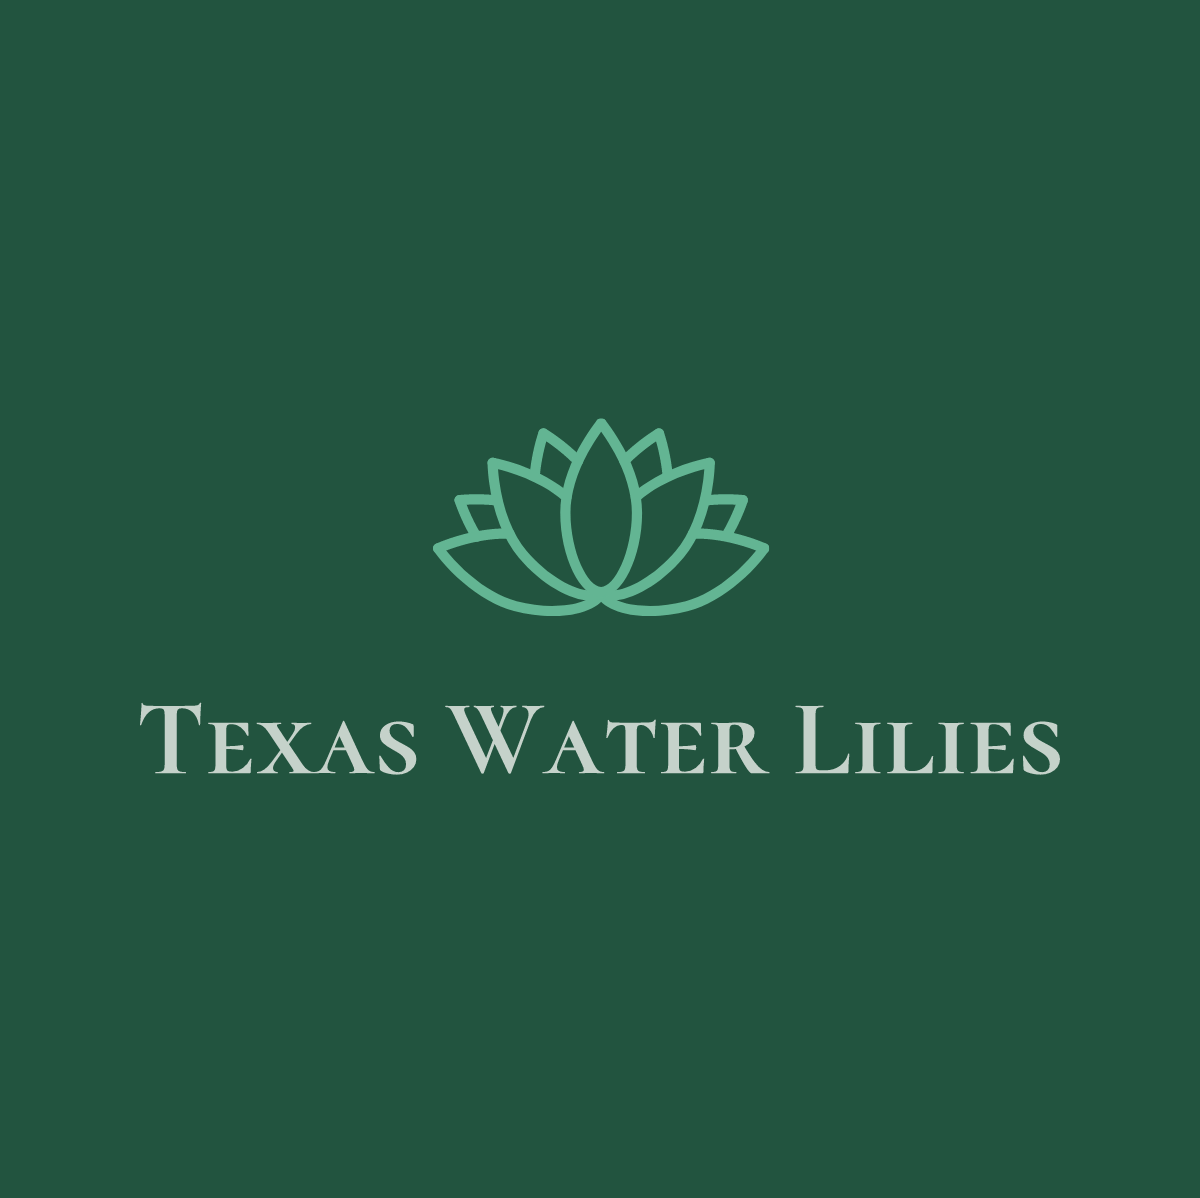 Texas Water Lilies